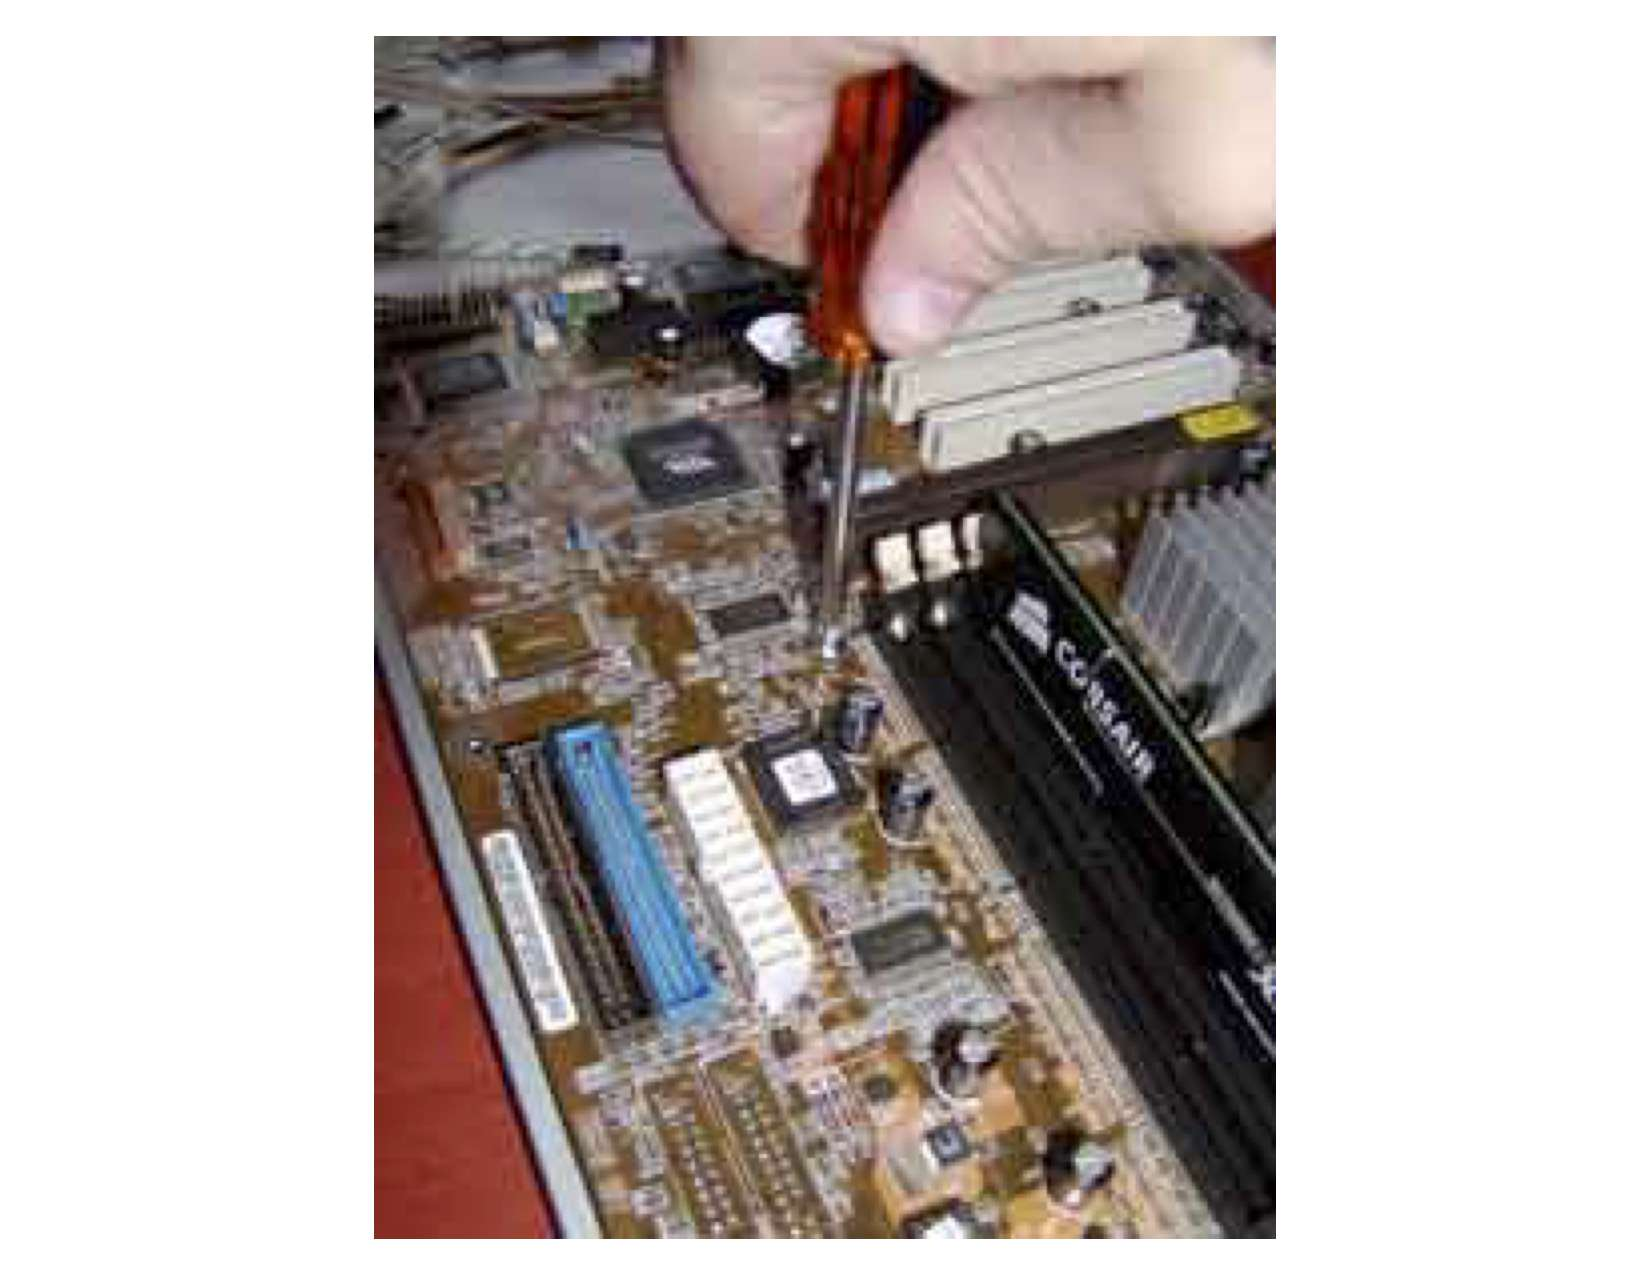 Screwing a motherboard onto the motherboard tray